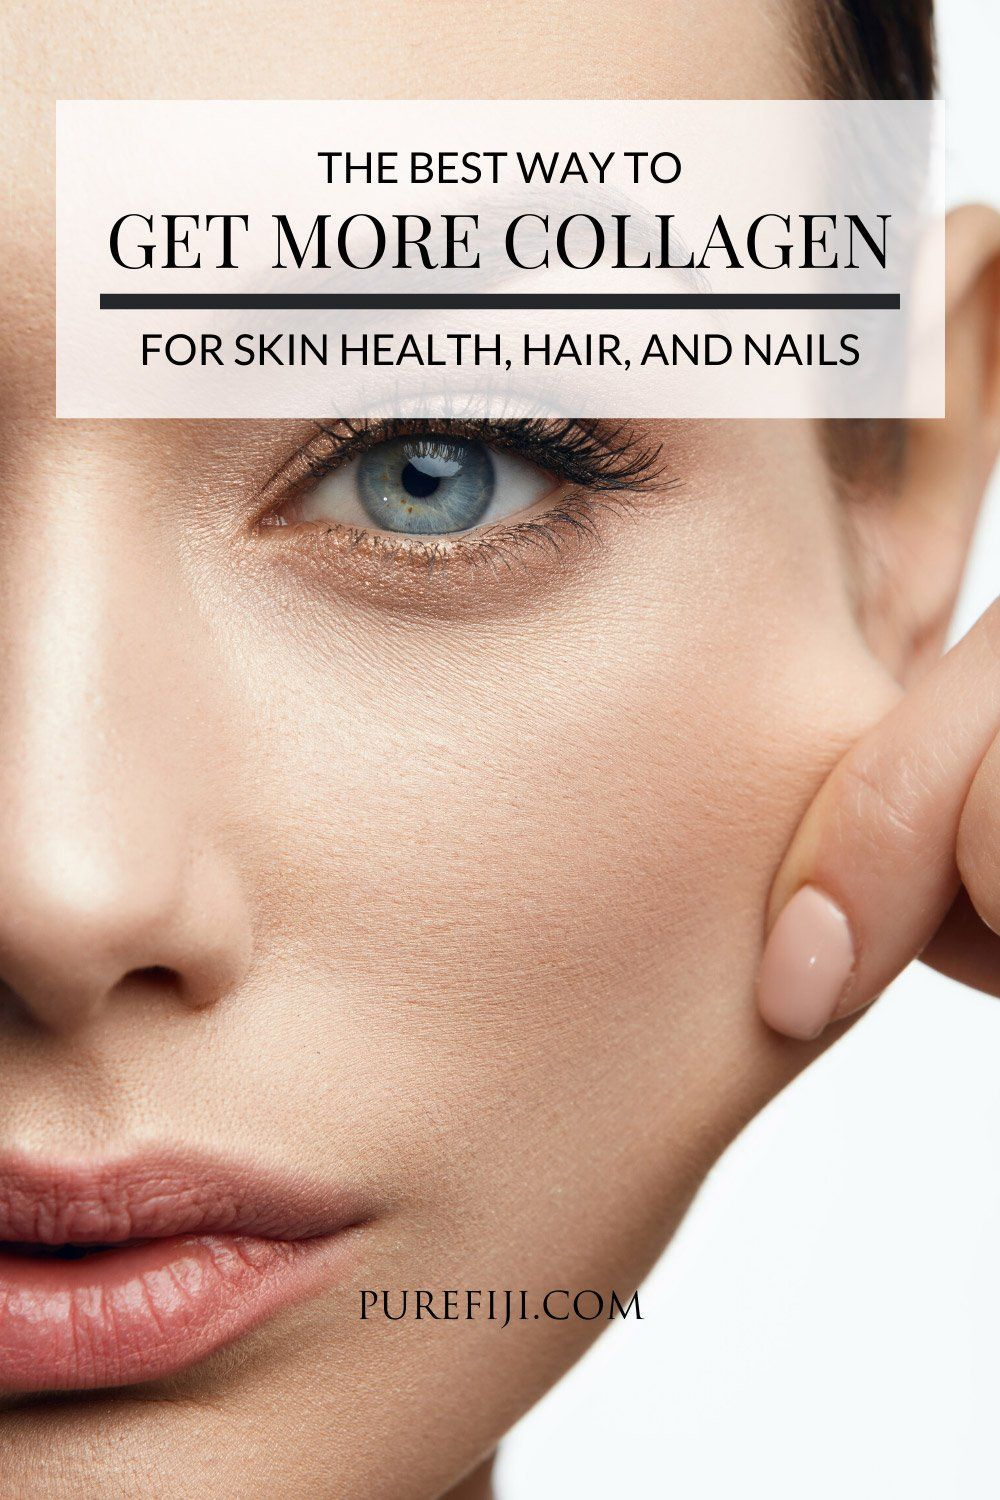 Are You Excited To Learn More About This Beauty Secret Celebrities Swear By Its Beauty Benefits S In 2020 Skin Health Natural Skin Care Routine Natural Skin Care Diy